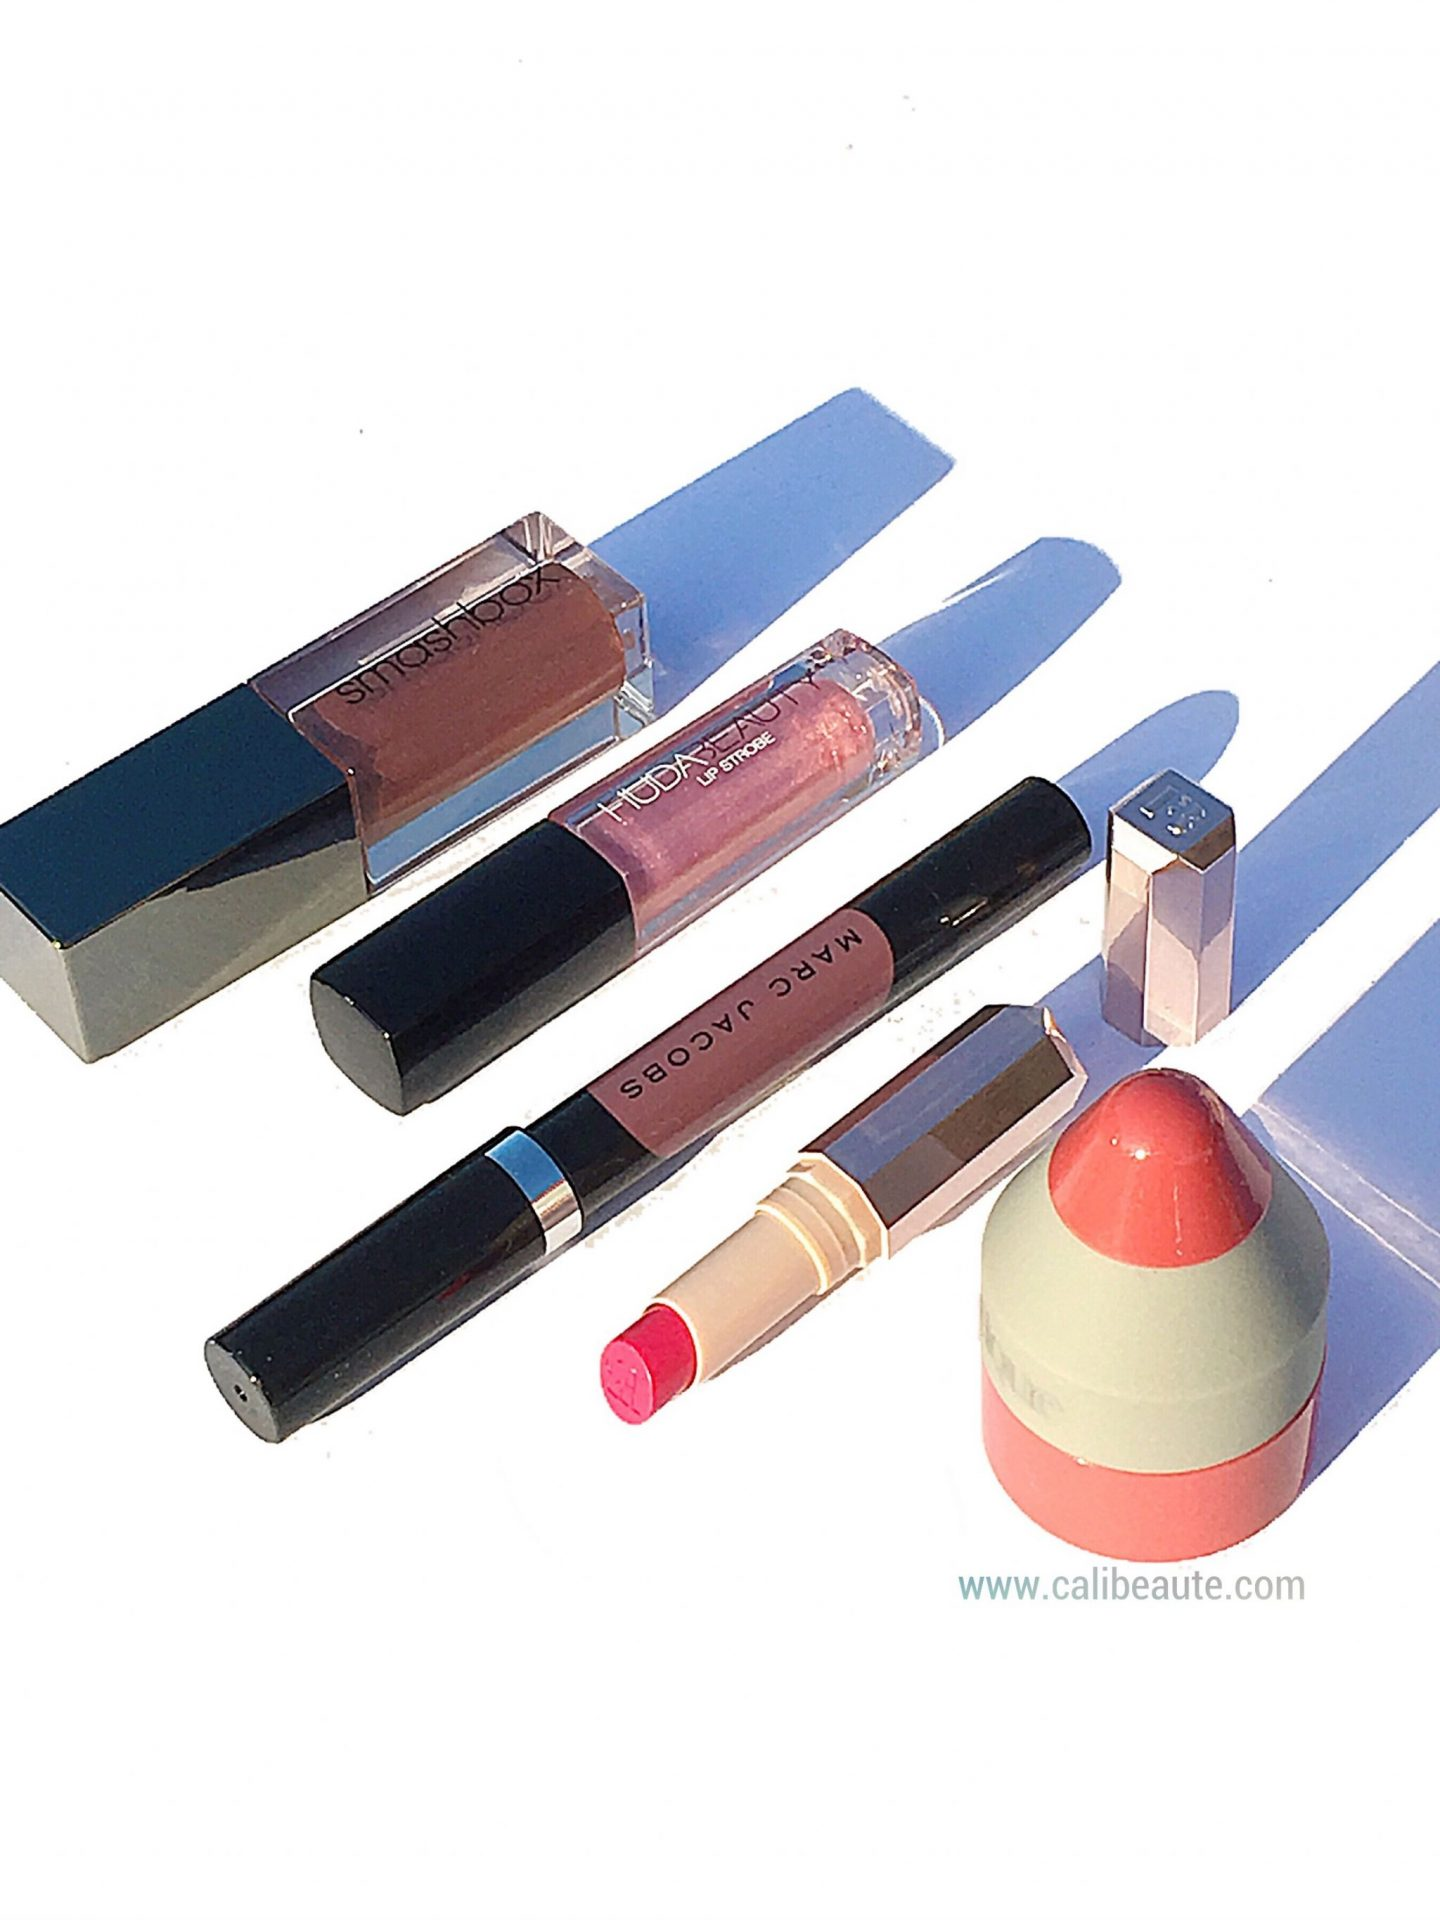 Sephora Favorites Give Me Some New Lip Kit Review and Swatches, www.calibeaute.com